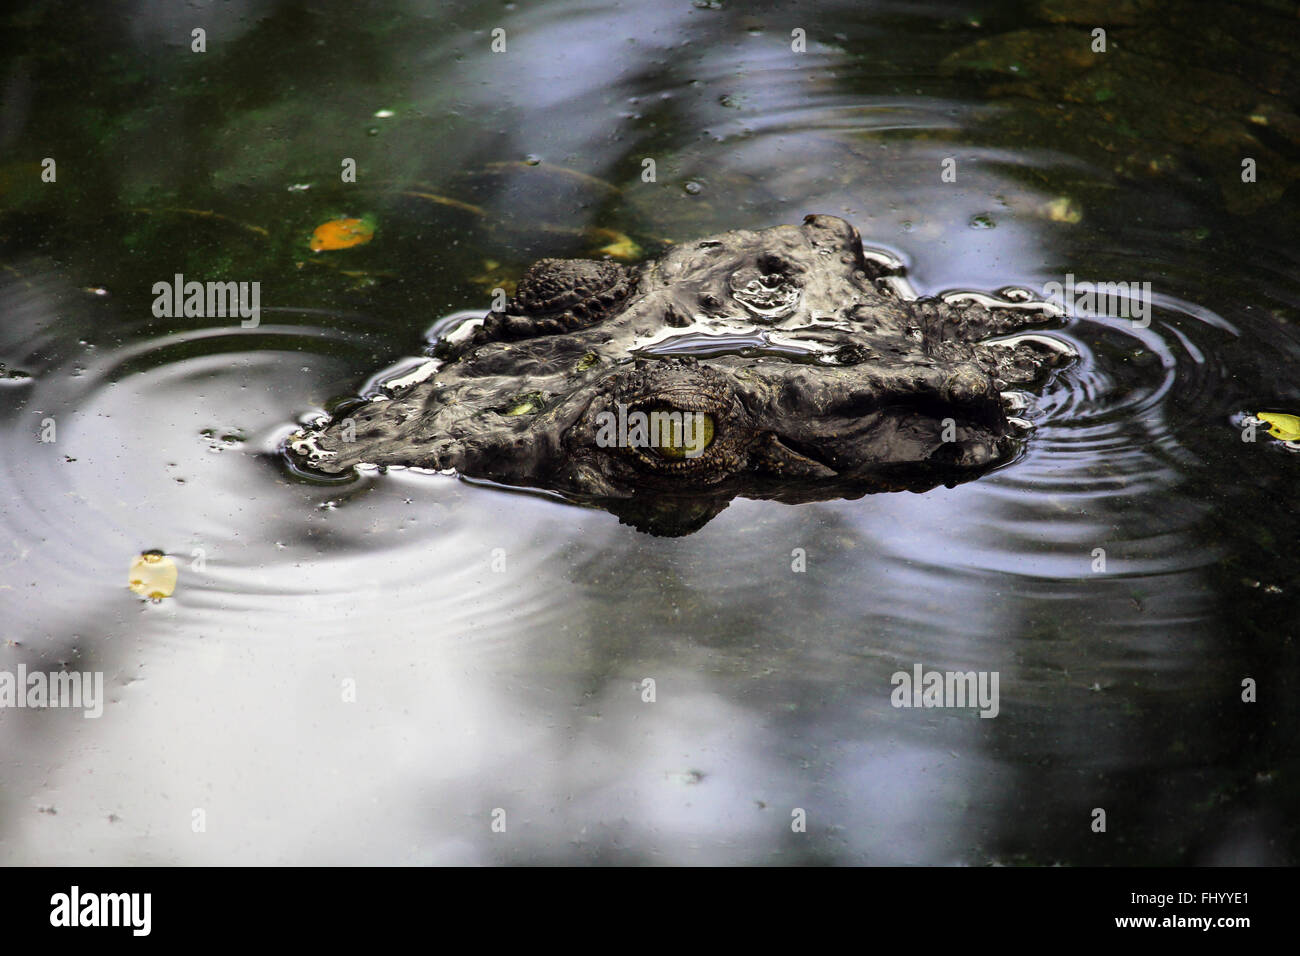 MIRI/MALAYSIA - 24 NOVEMBER 2015: A crocodile's head coming out of the water Borneo next to the border of Malaysia - Stock Image